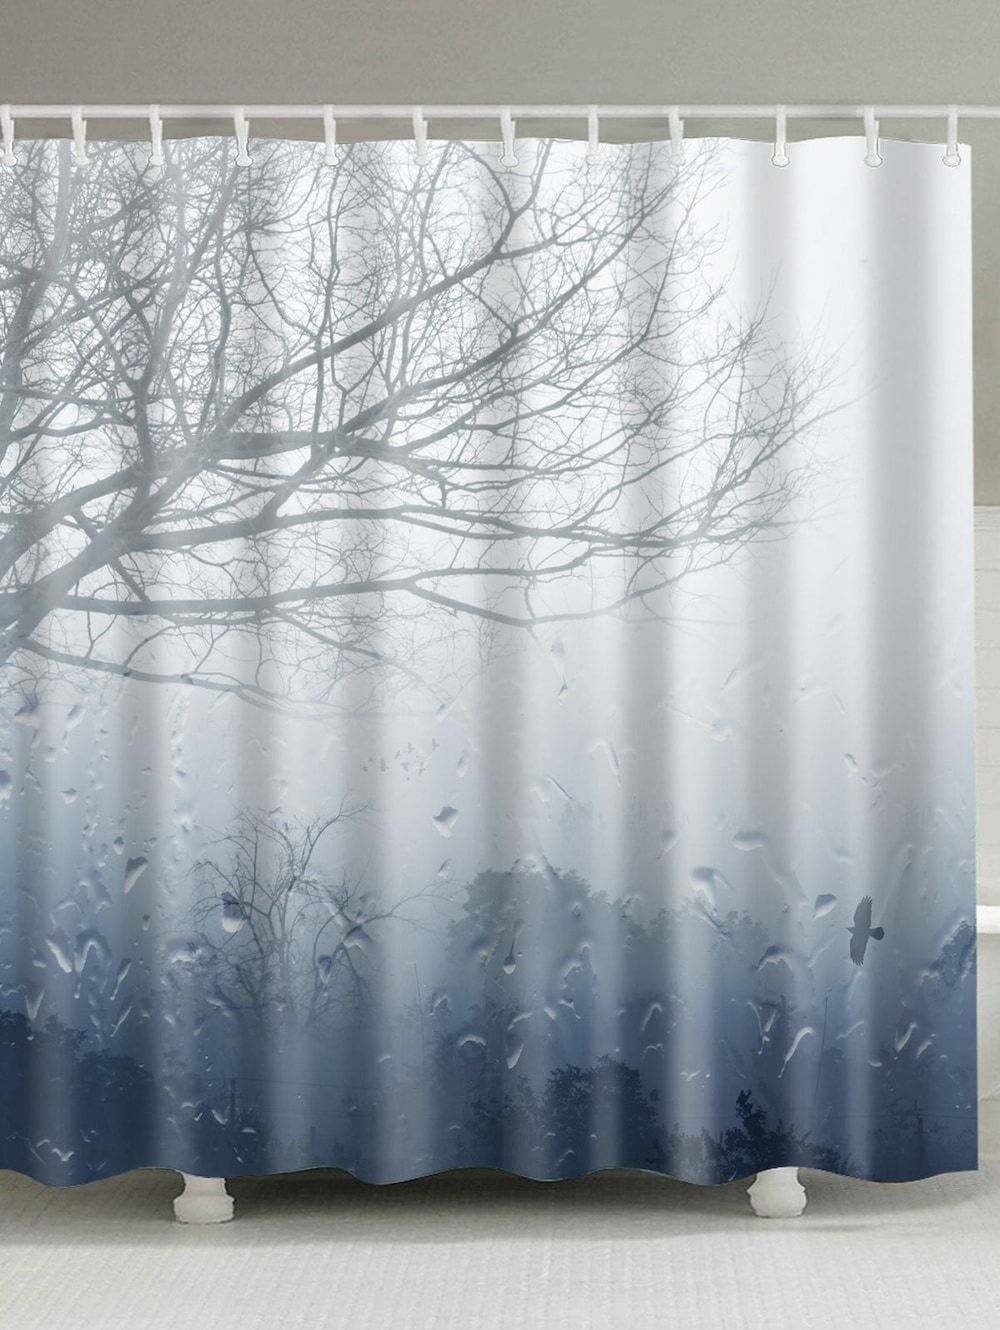 Scenery Print Waterproof Fabric Shower Curtain